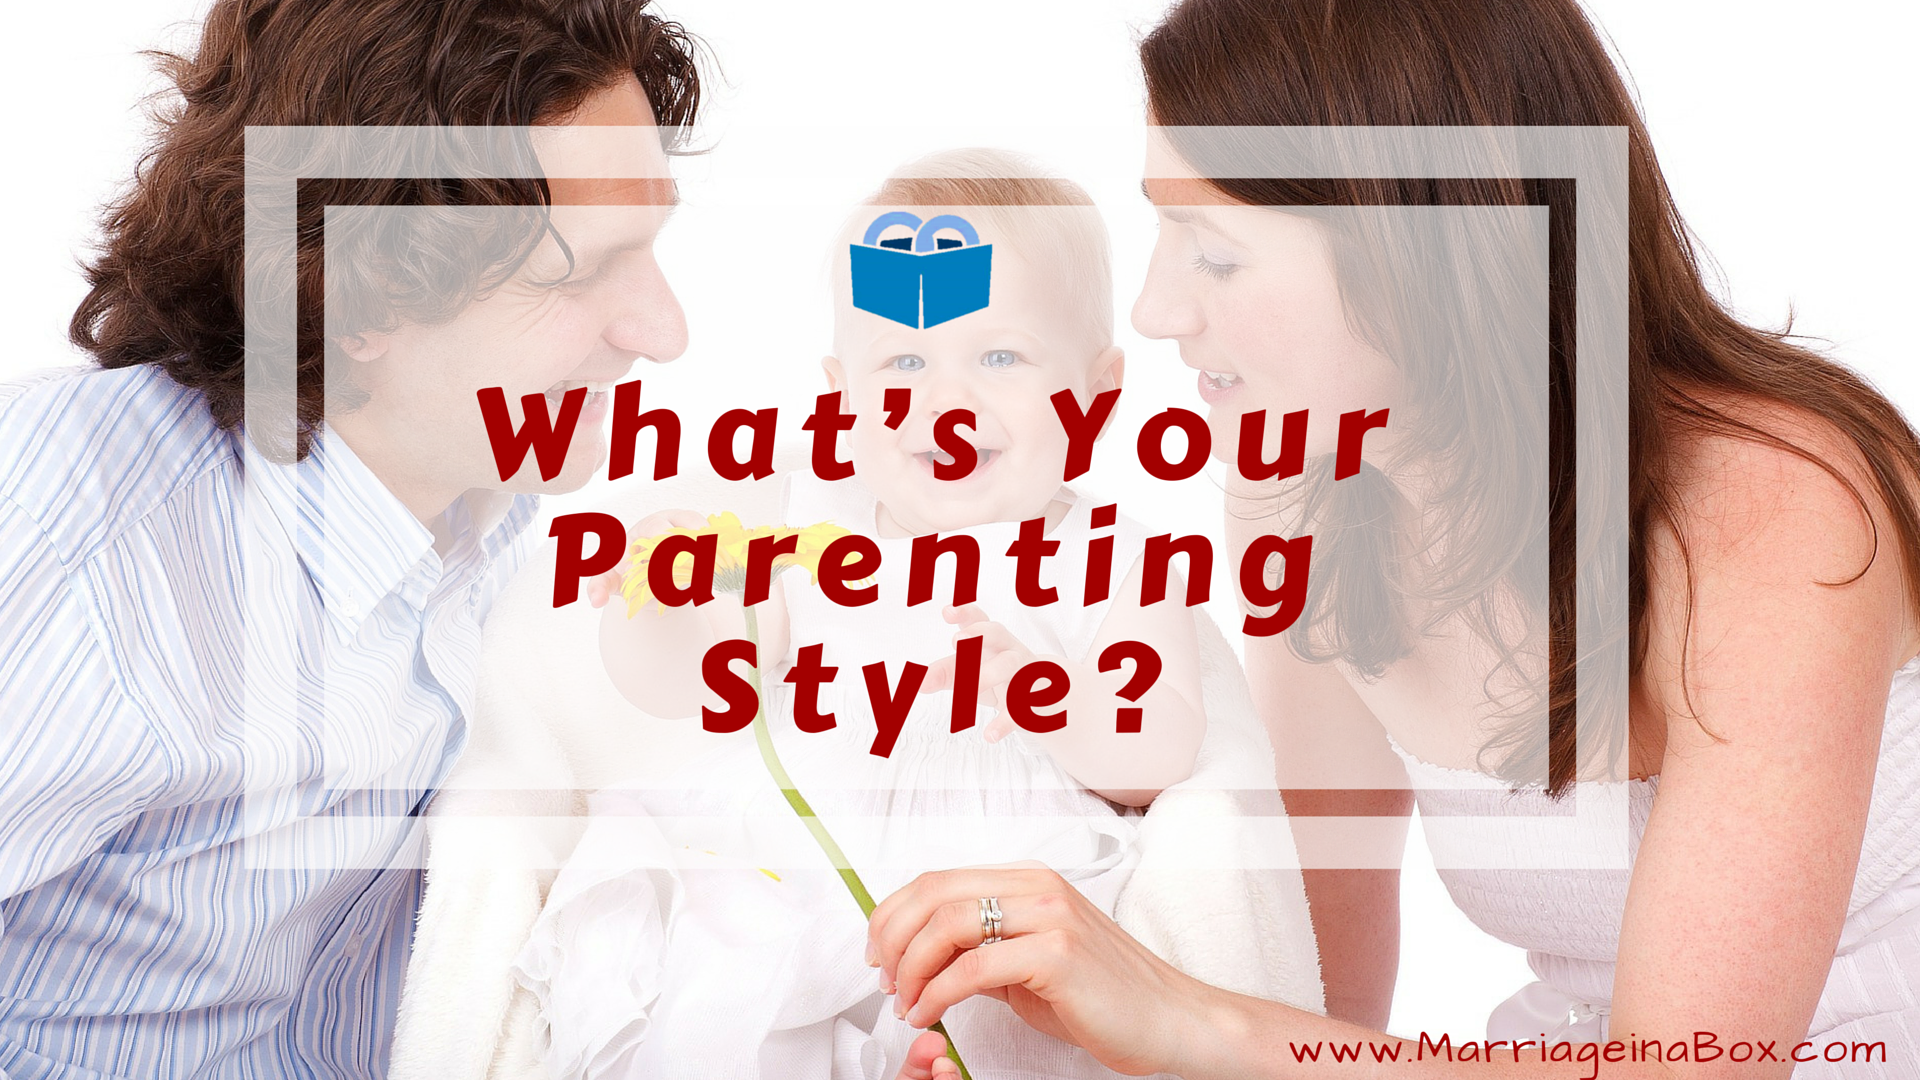 parents are too permissive with their When the parents become too permissive with their offspring, the children tend to believe they could make decisions early about their life before they are mature enough and this fact creates serious many people believe that parents are too permissive with their children nowadays.